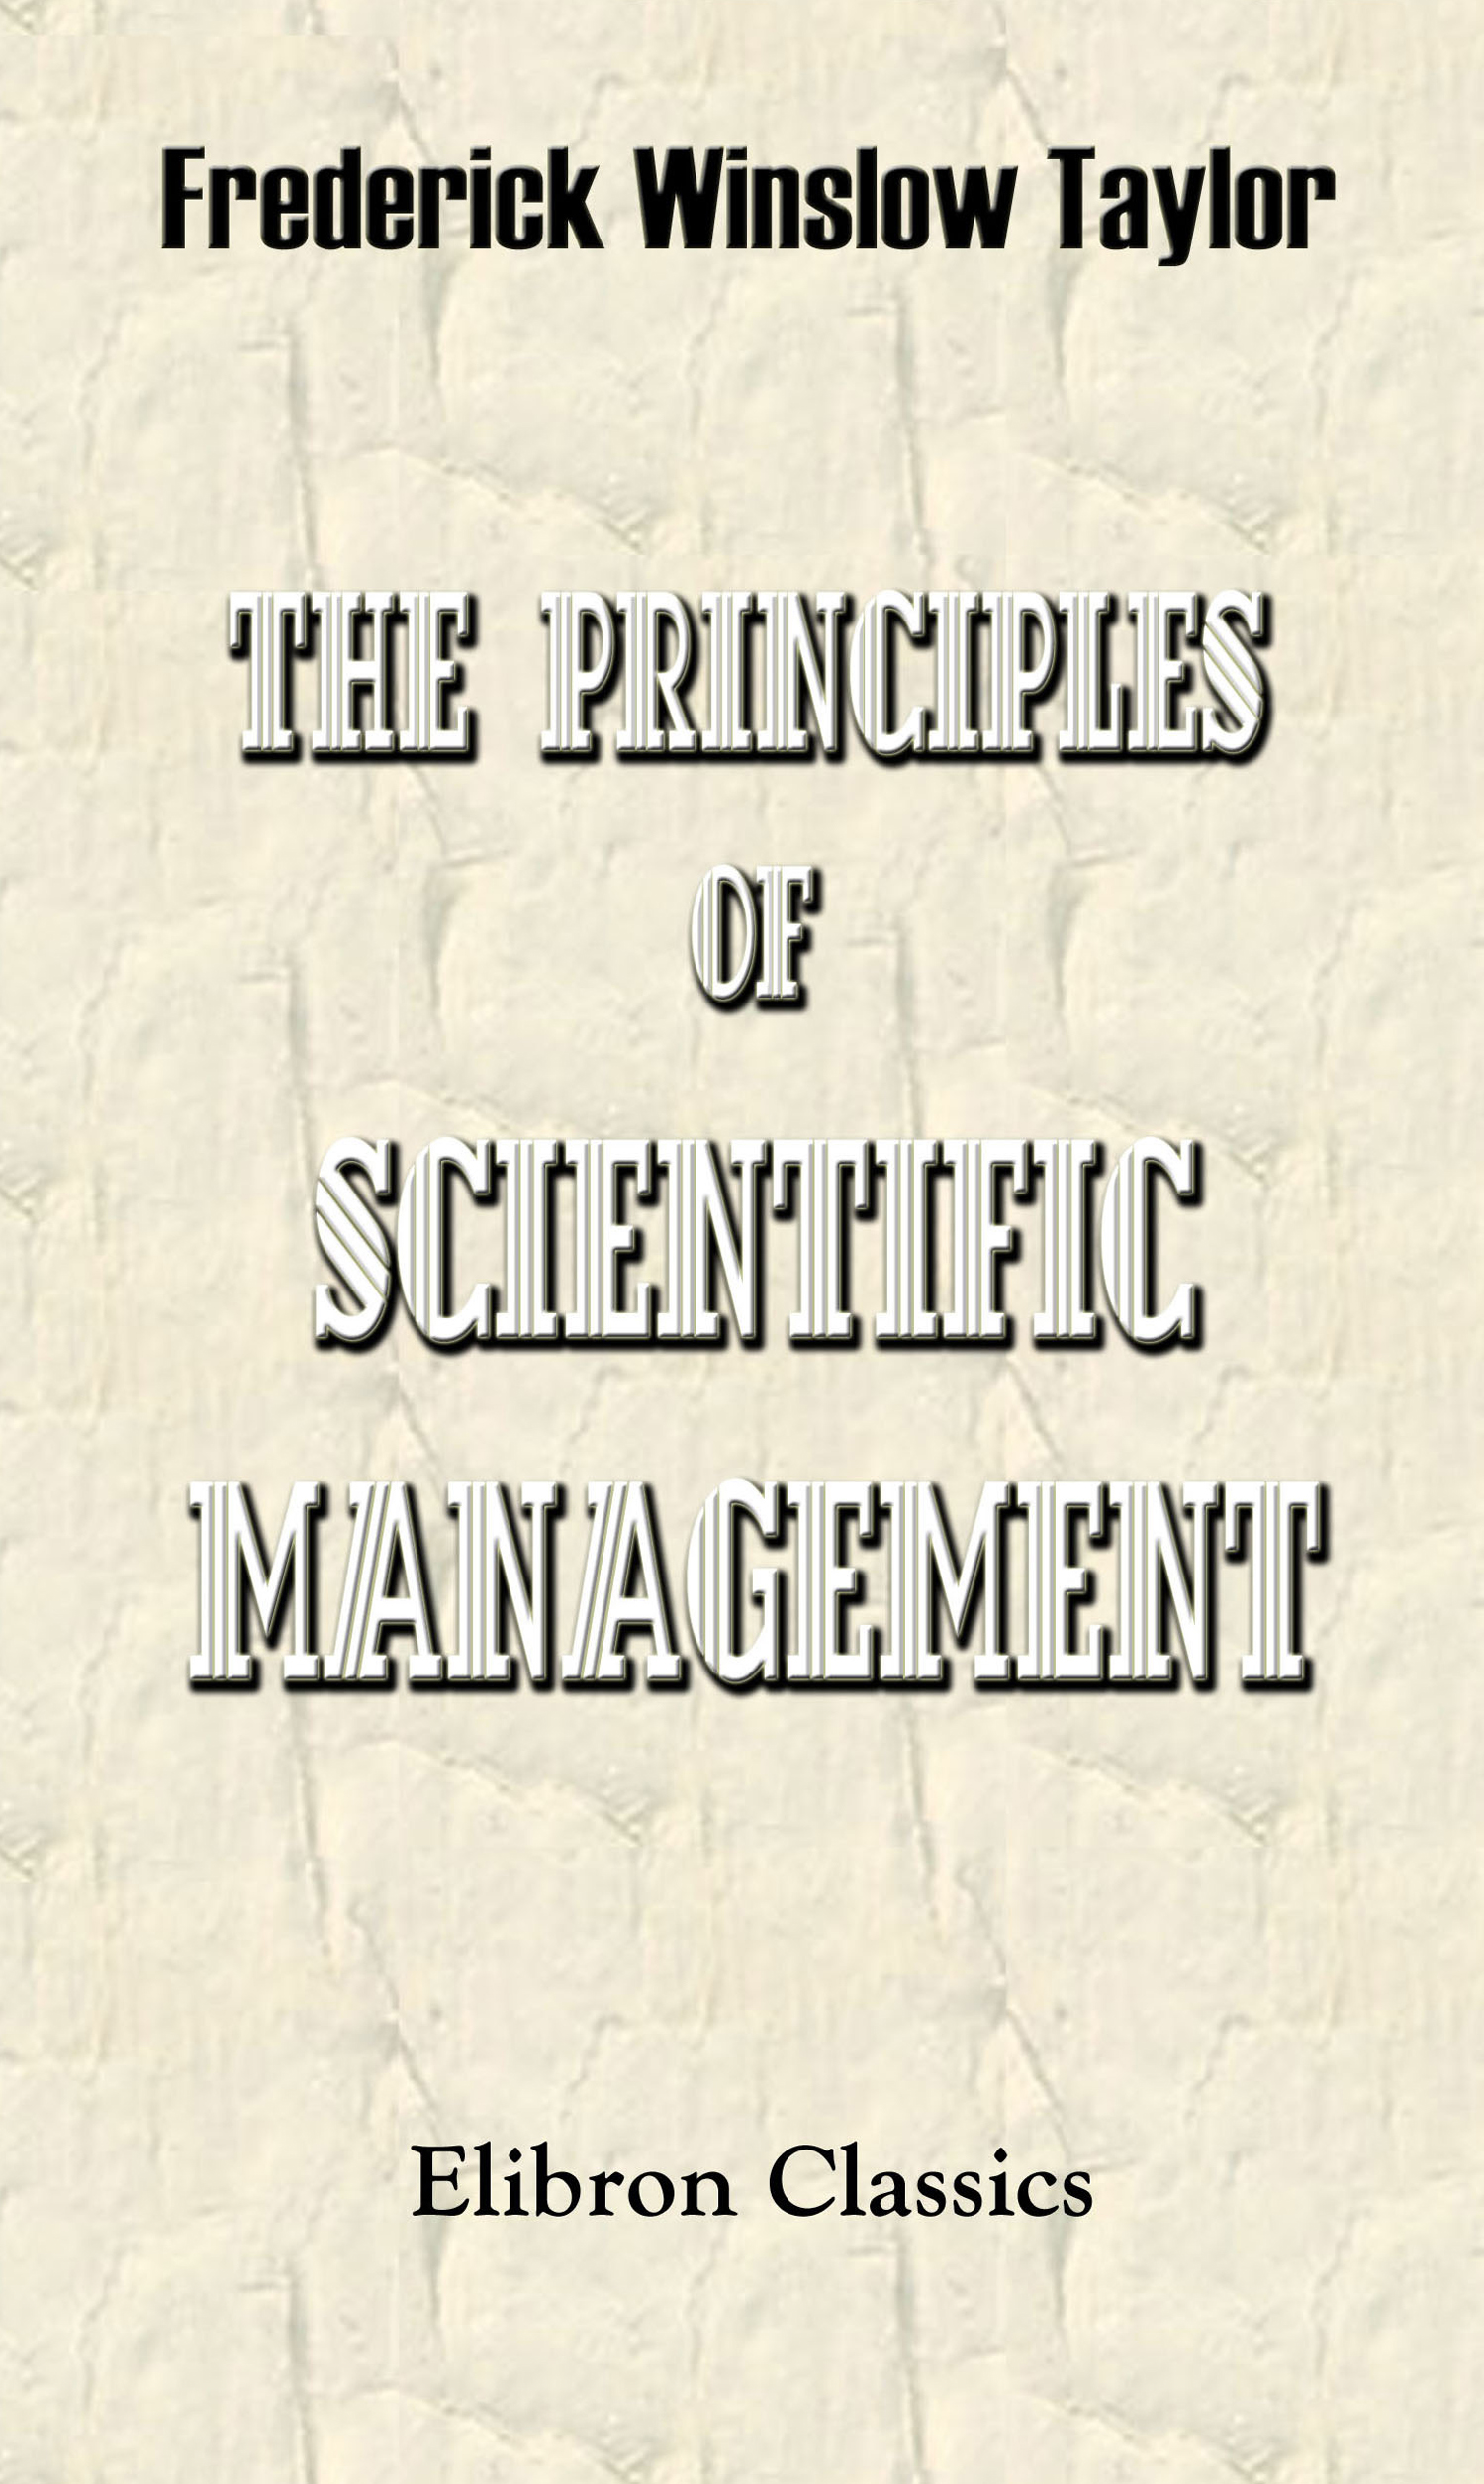 The Principles of Scientific Management.